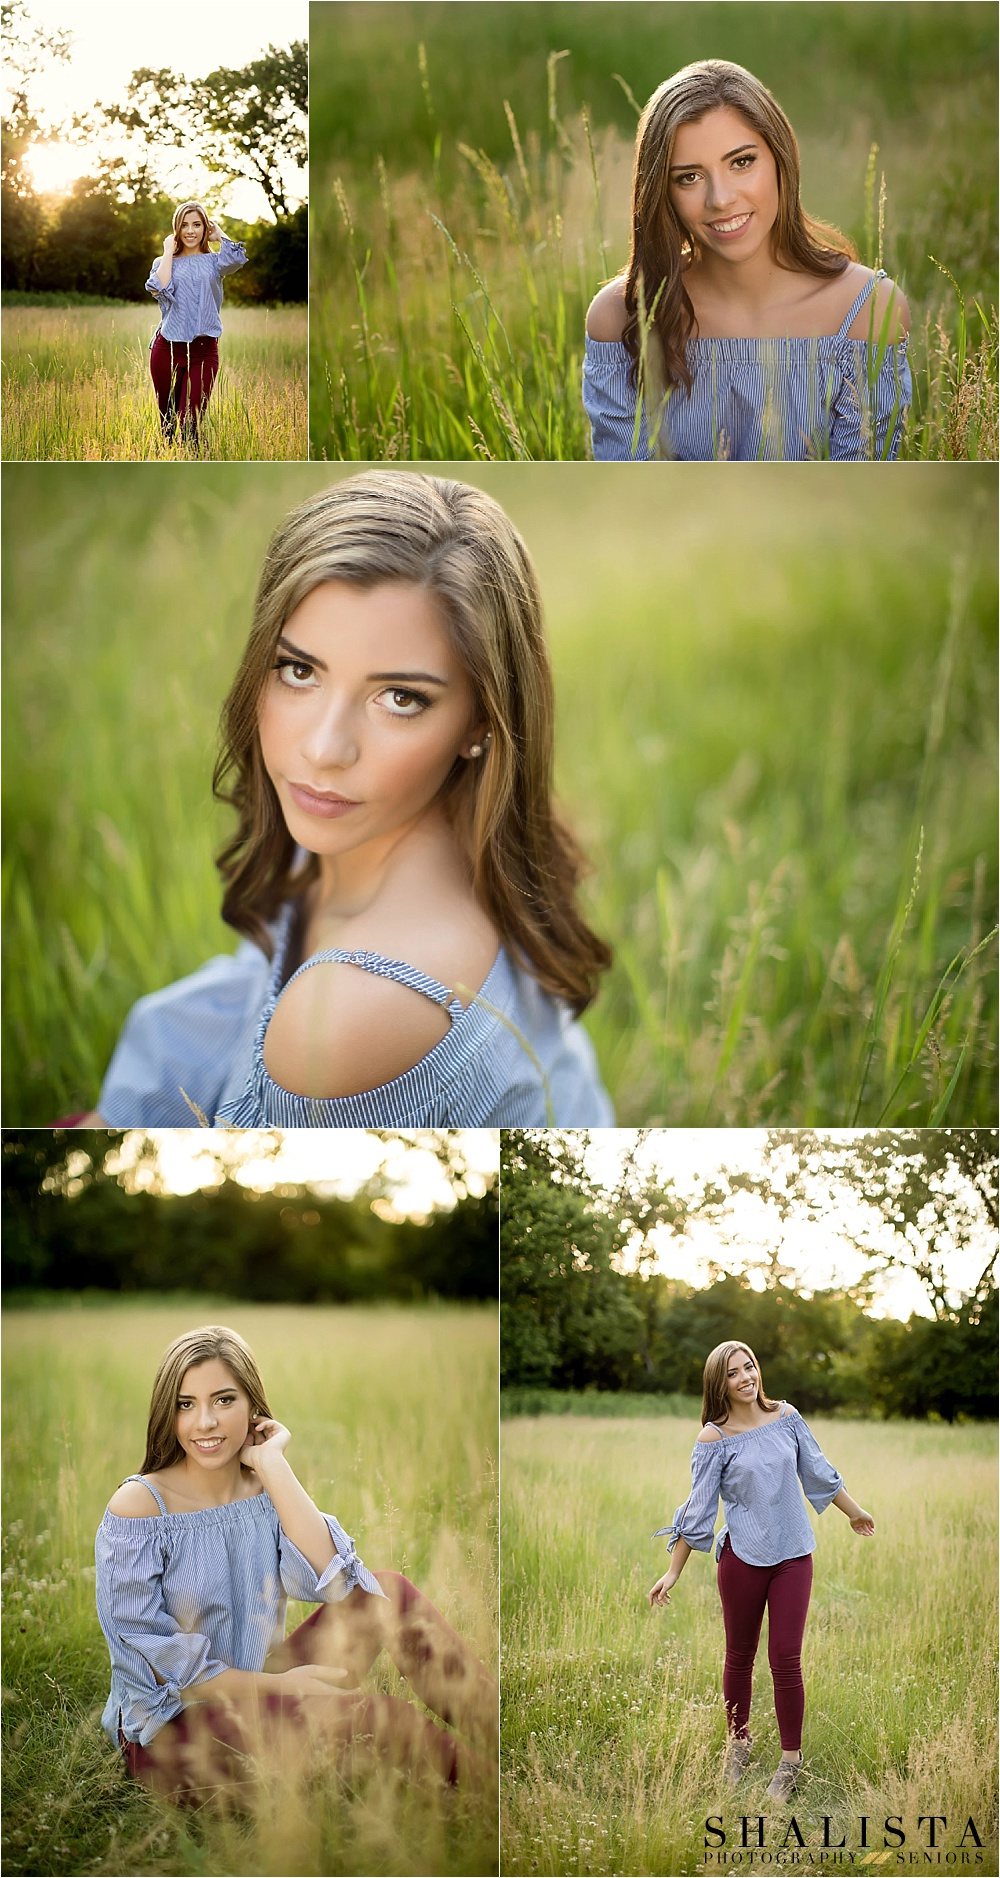 Outdoor sunset senior girl images.